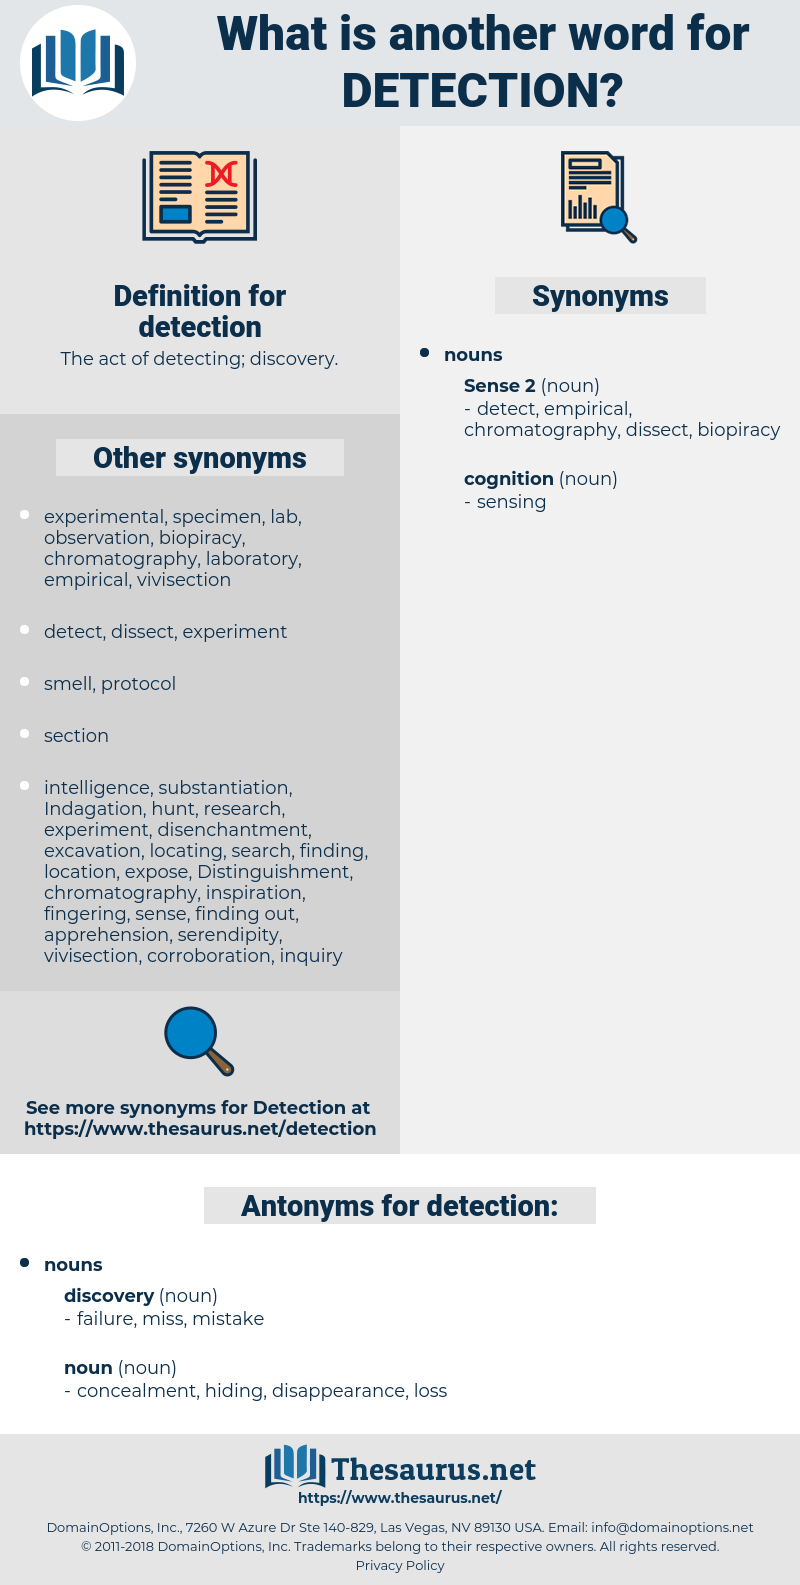 detection, synonym detection, another word for detection, words like detection, thesaurus detection